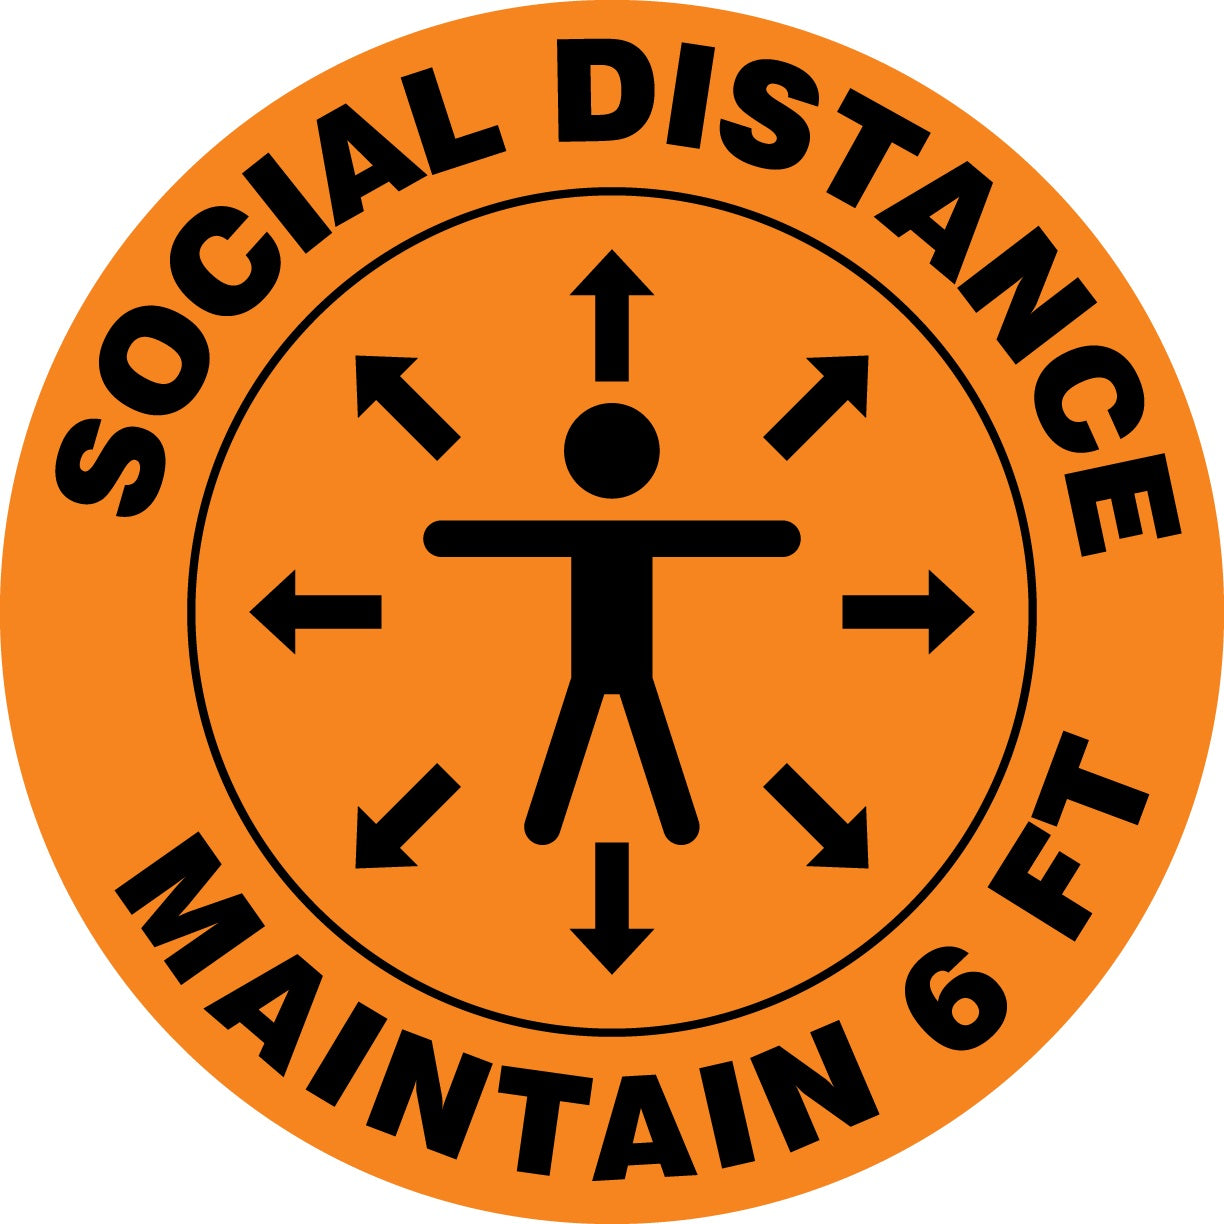 Social Distance Maintain 6 FT (Person) - Floor Sign